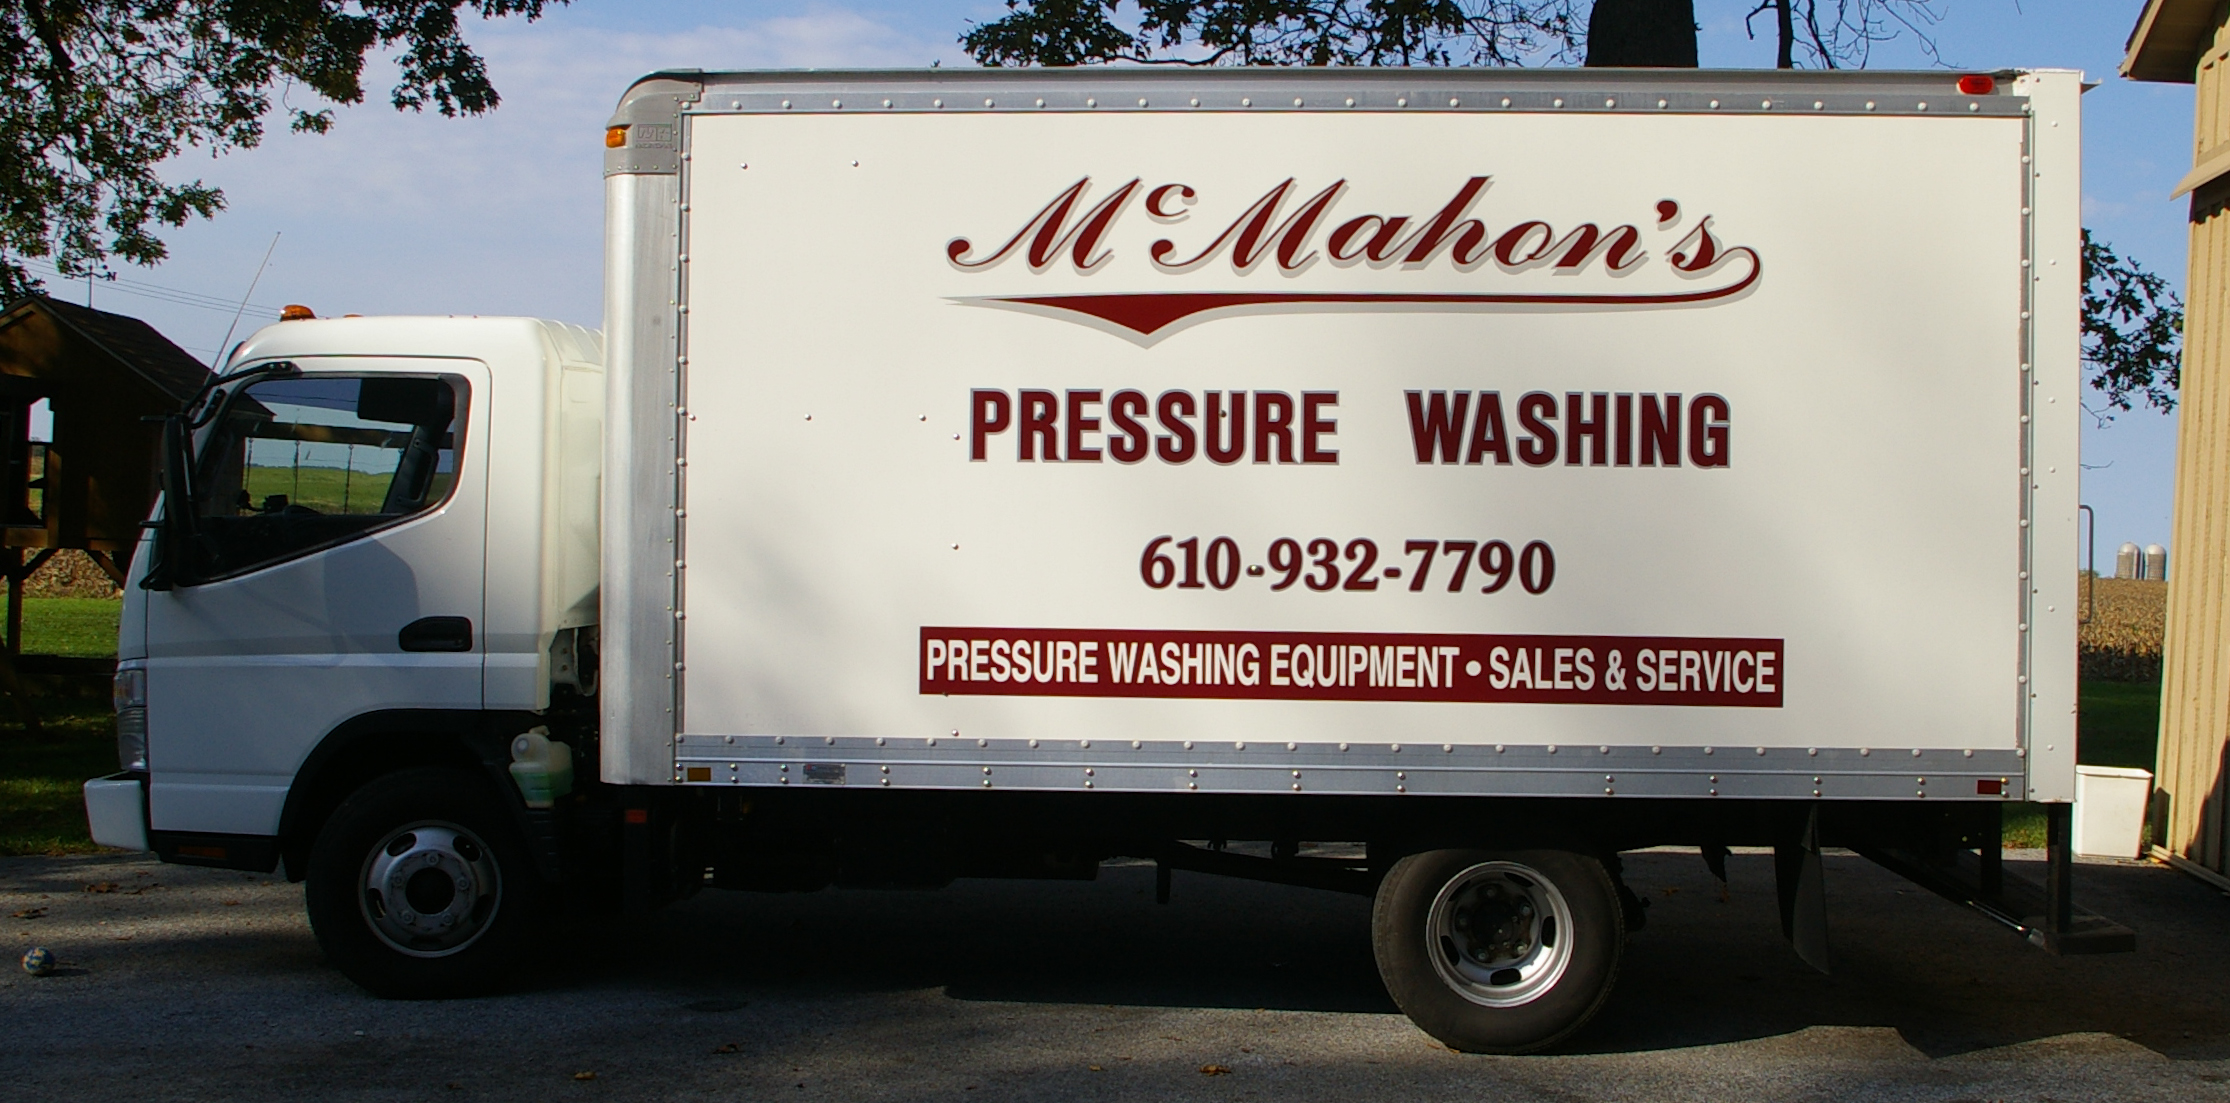 McMahon's Mobile Pressure Washing